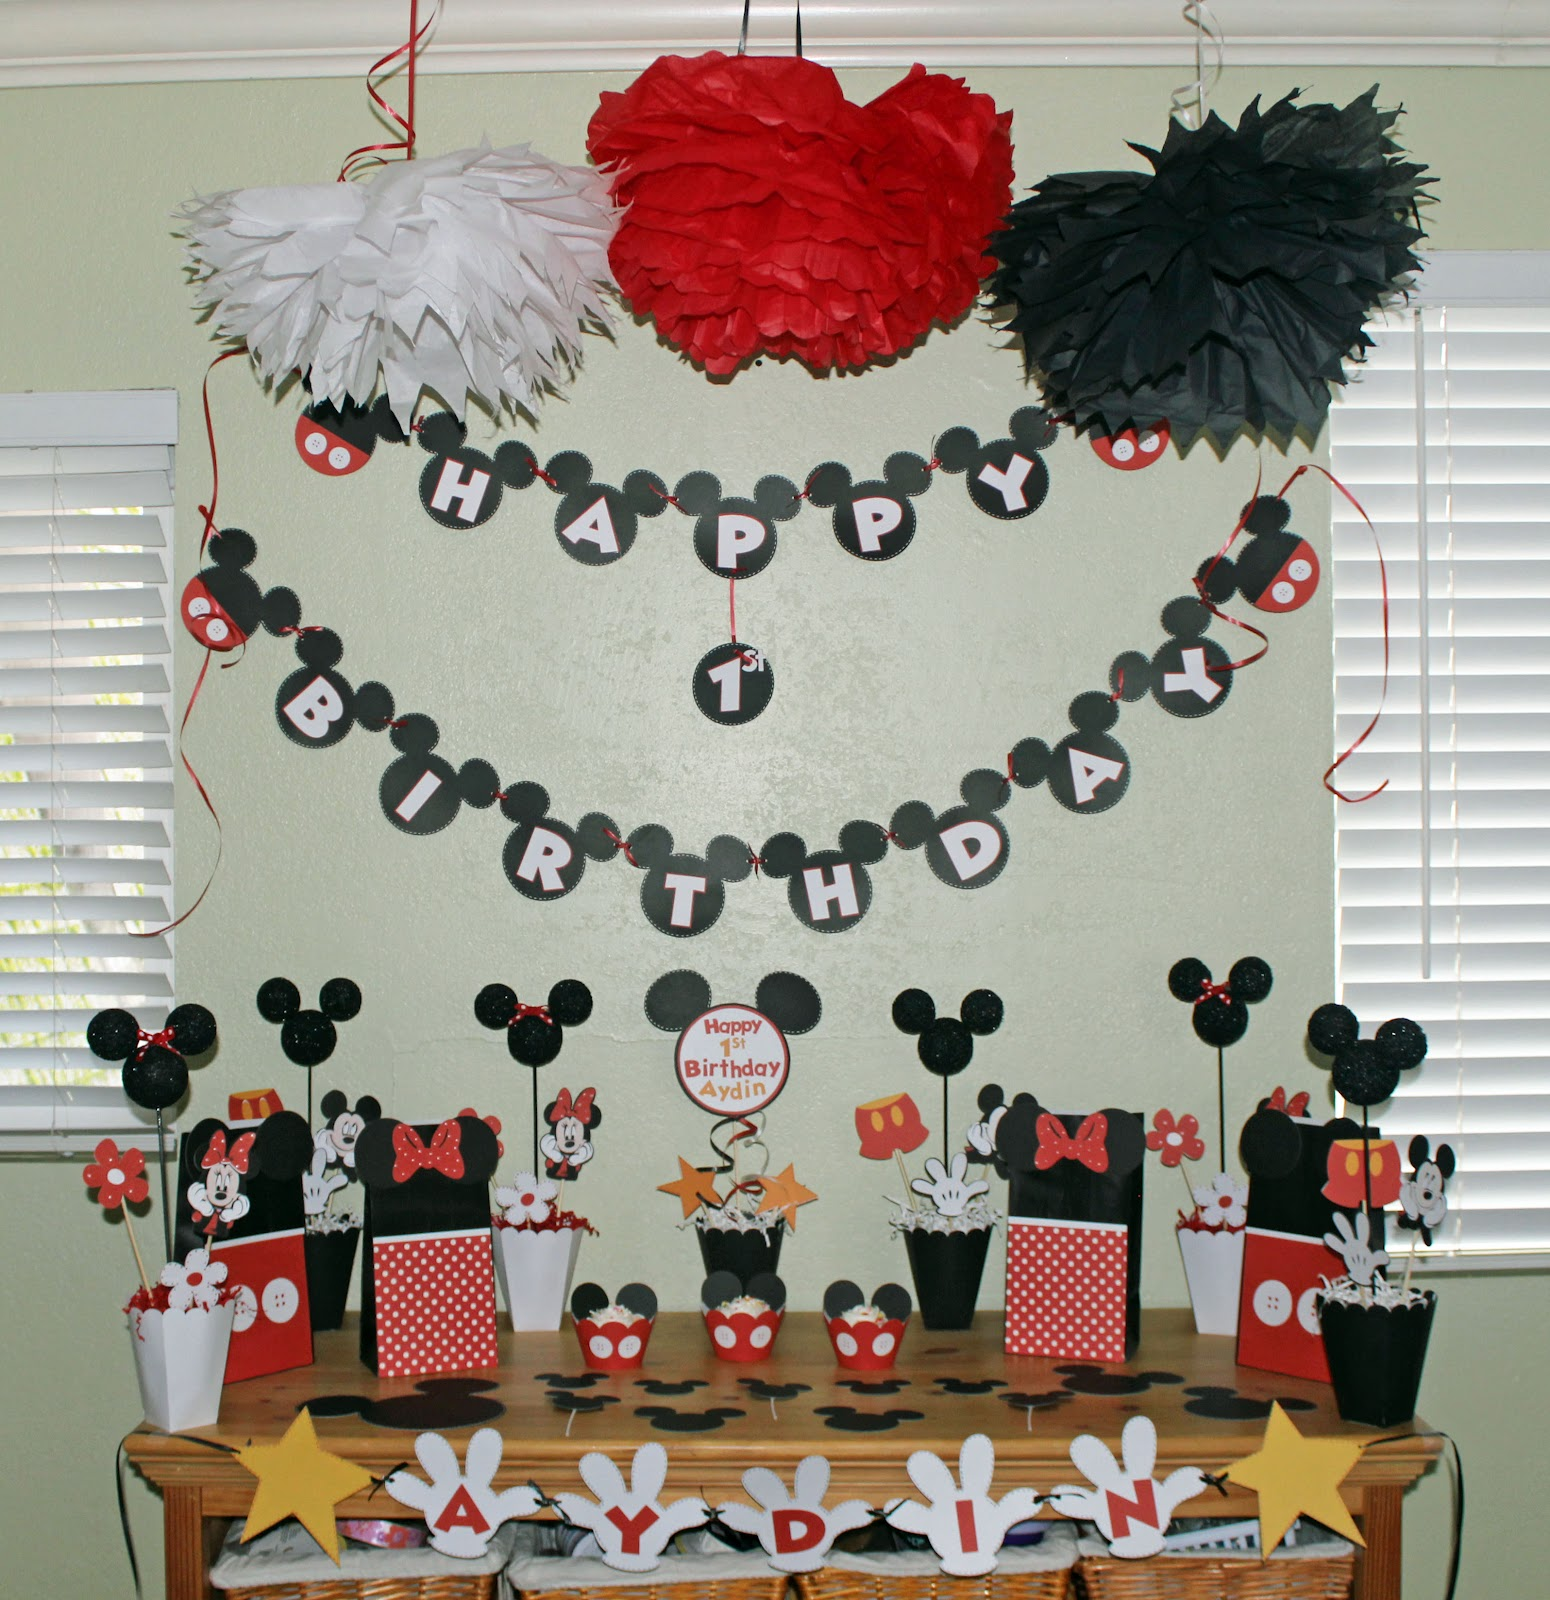 Deanne's Crafting Adventures: Mickey Mouse Party